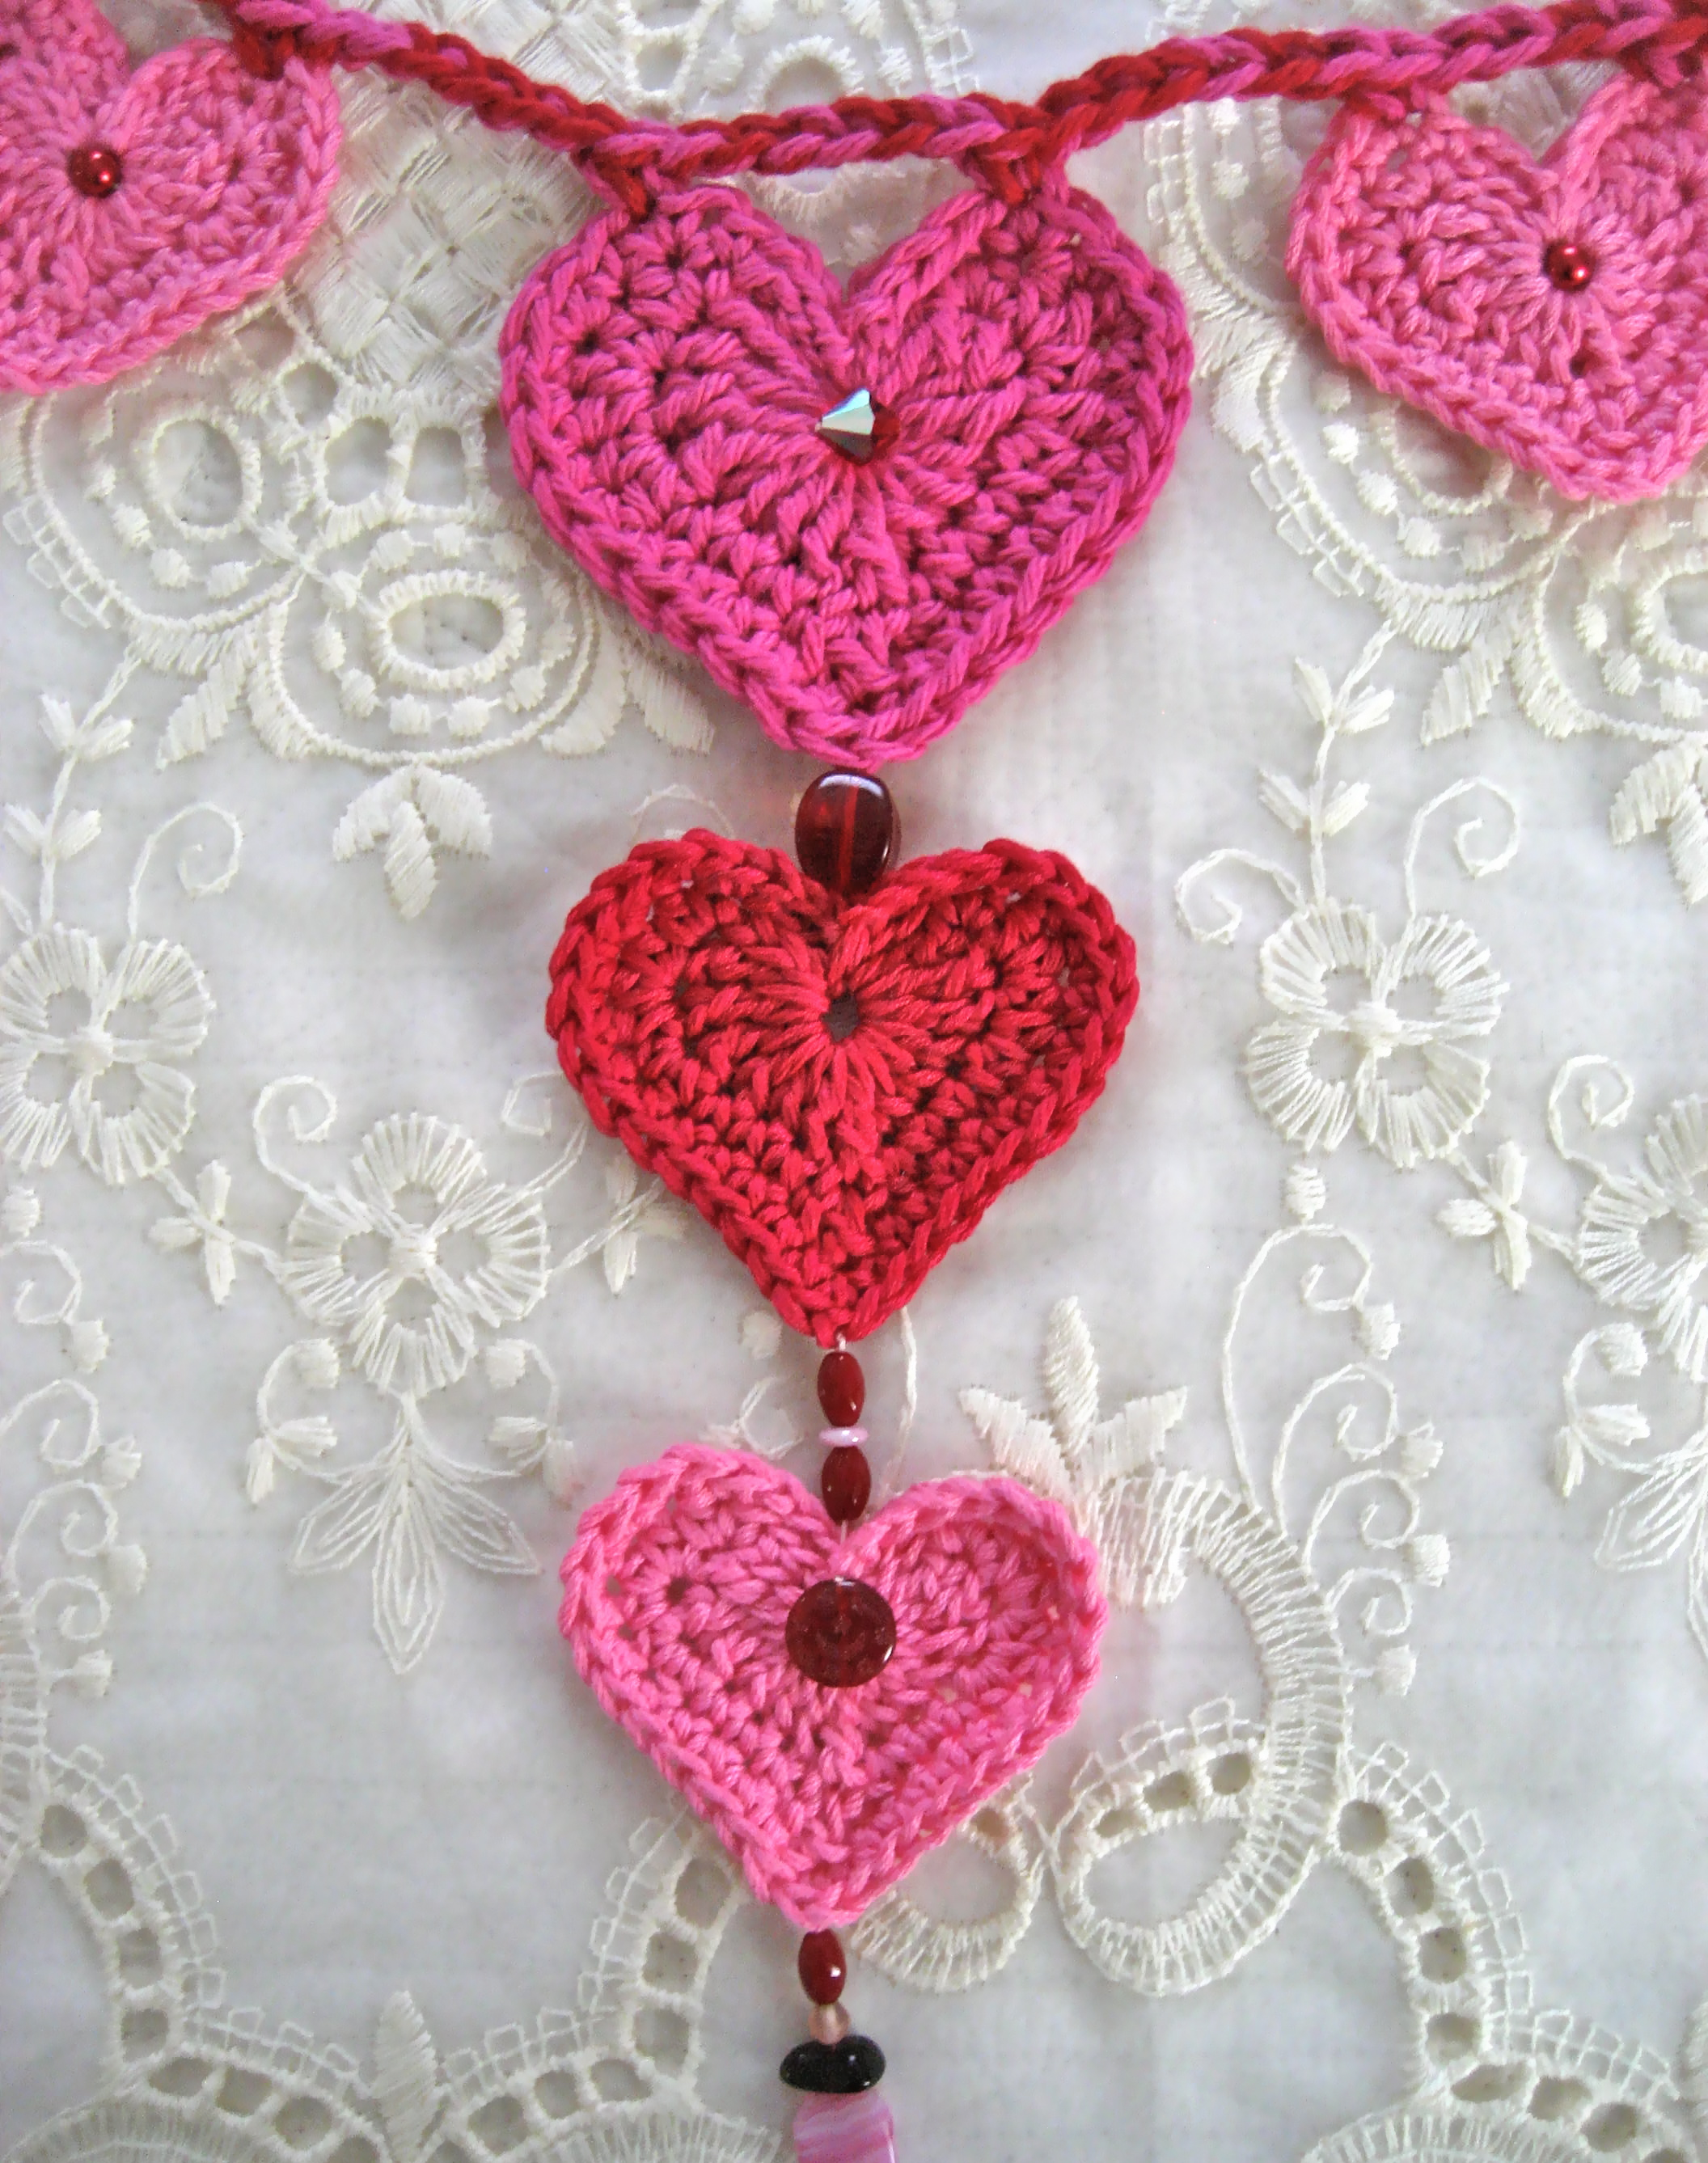 Crochet Valentine : Valentine?s Day - Crochet Heart Garland Big A, Little A